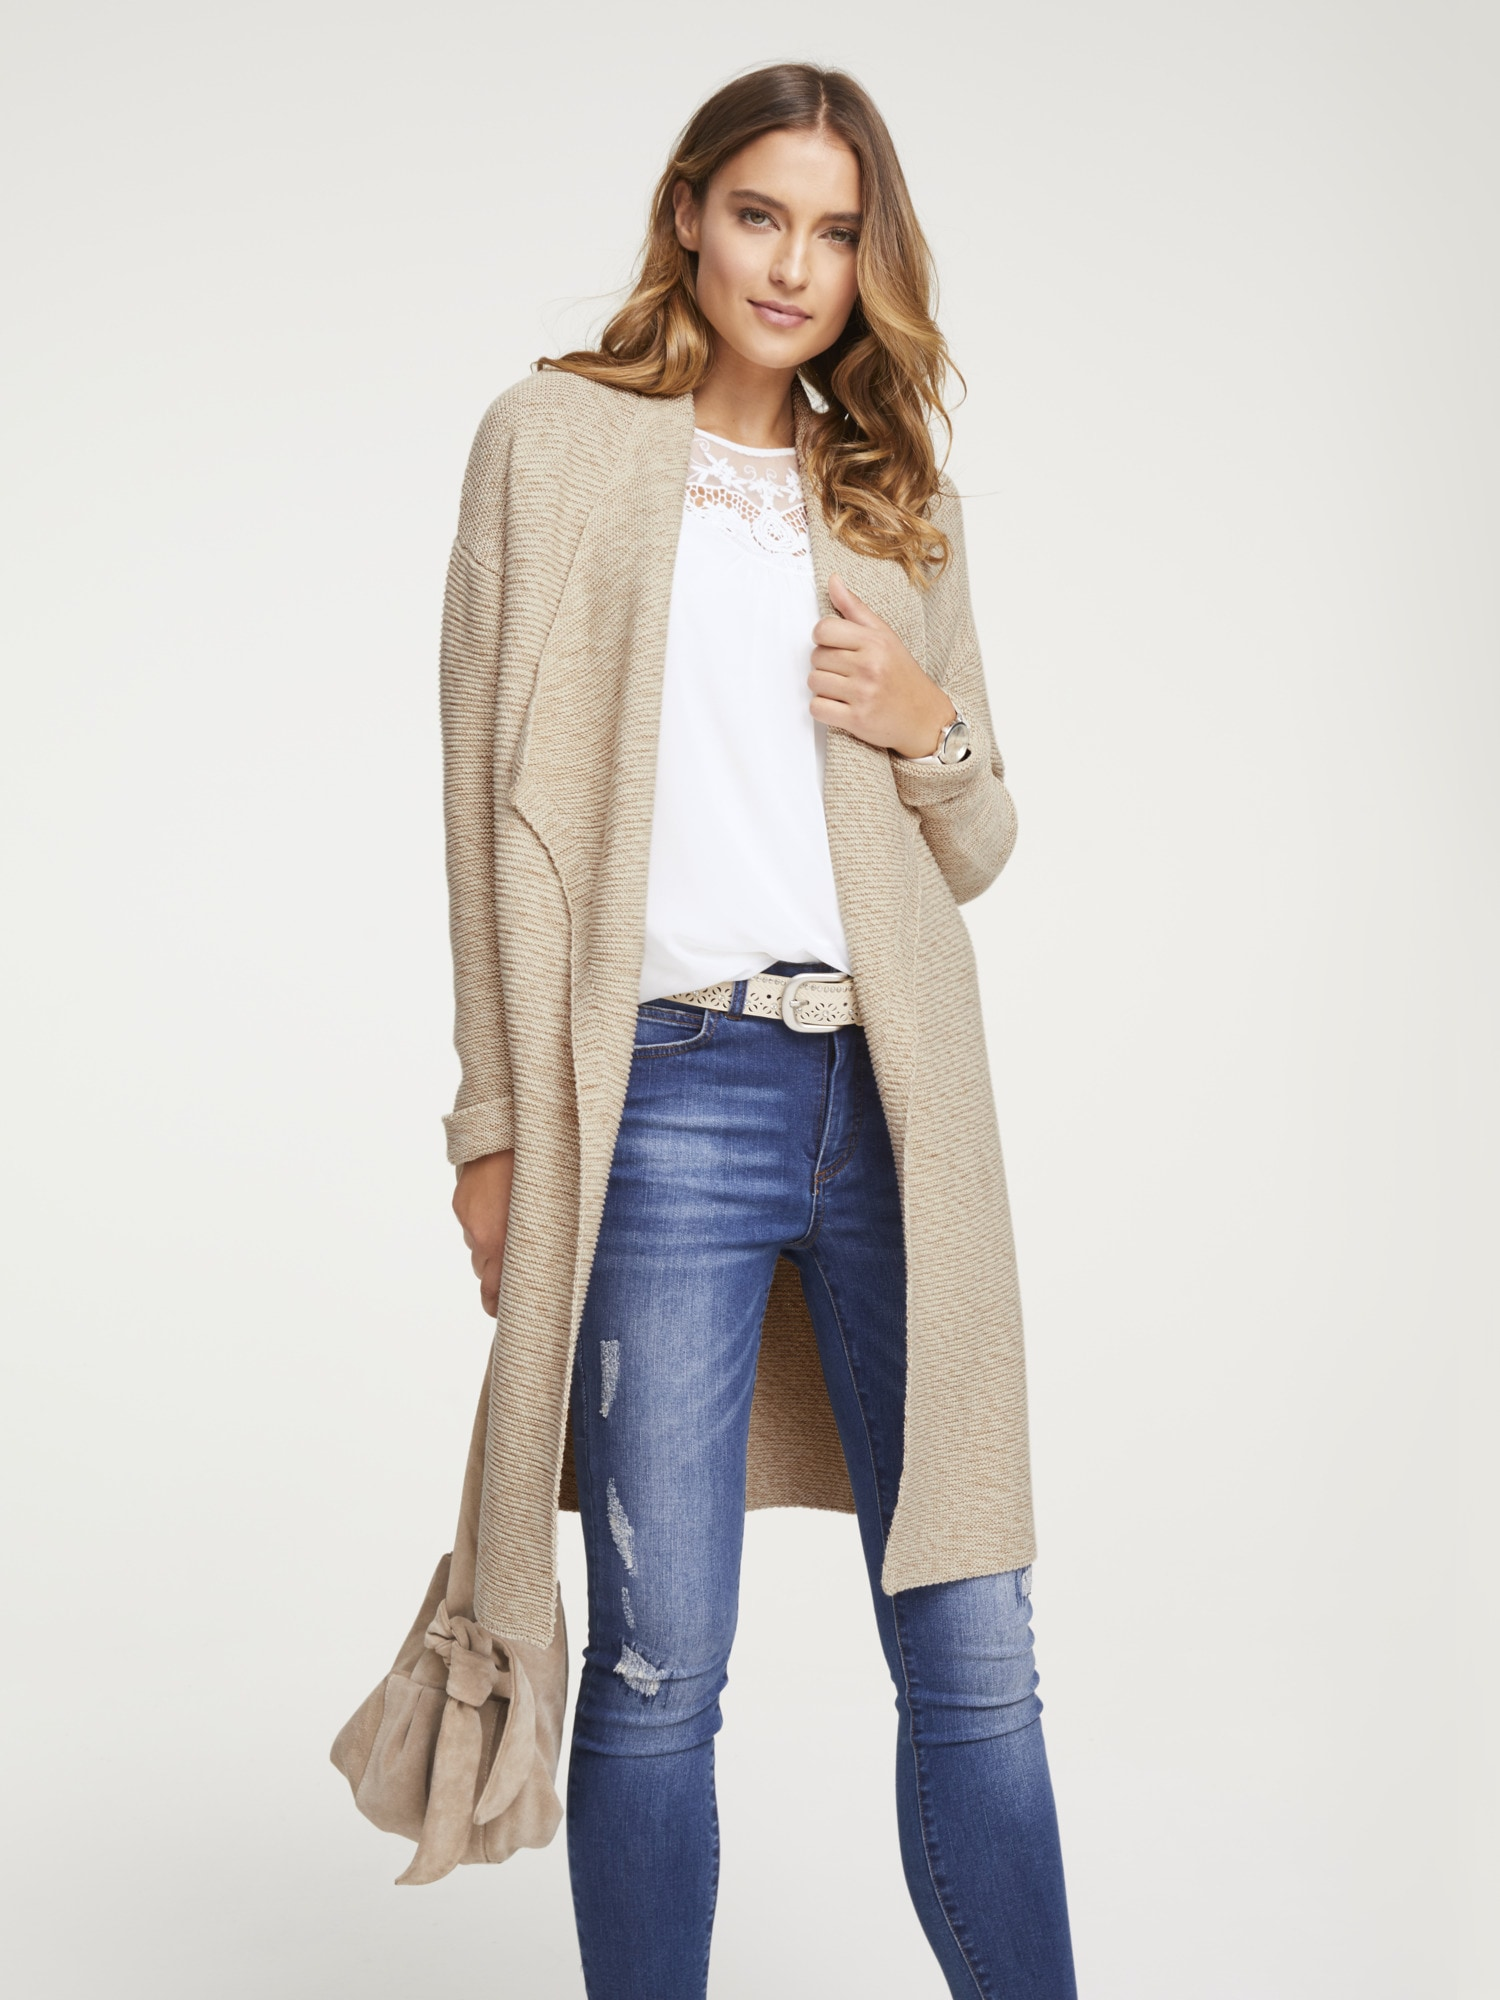 Longstrickjacke in Melange-Optik von LINEA TESINI by Heine